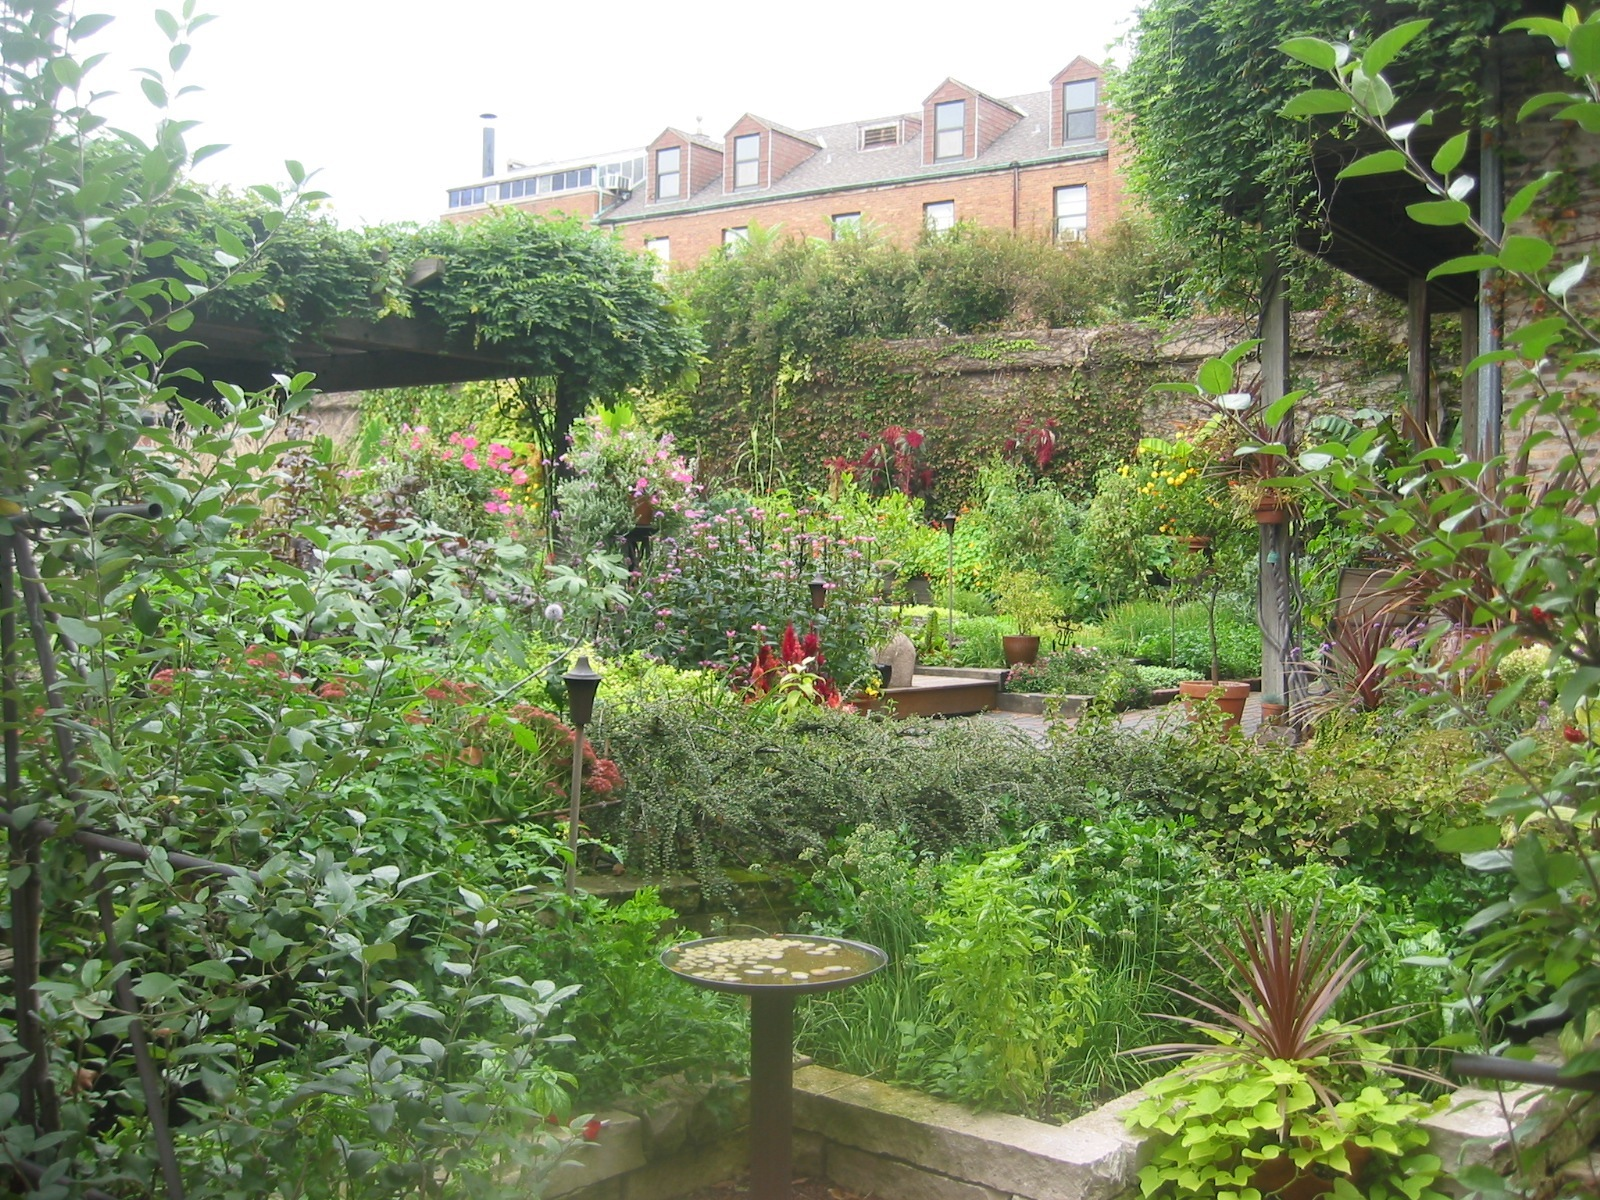 A peek into the garden